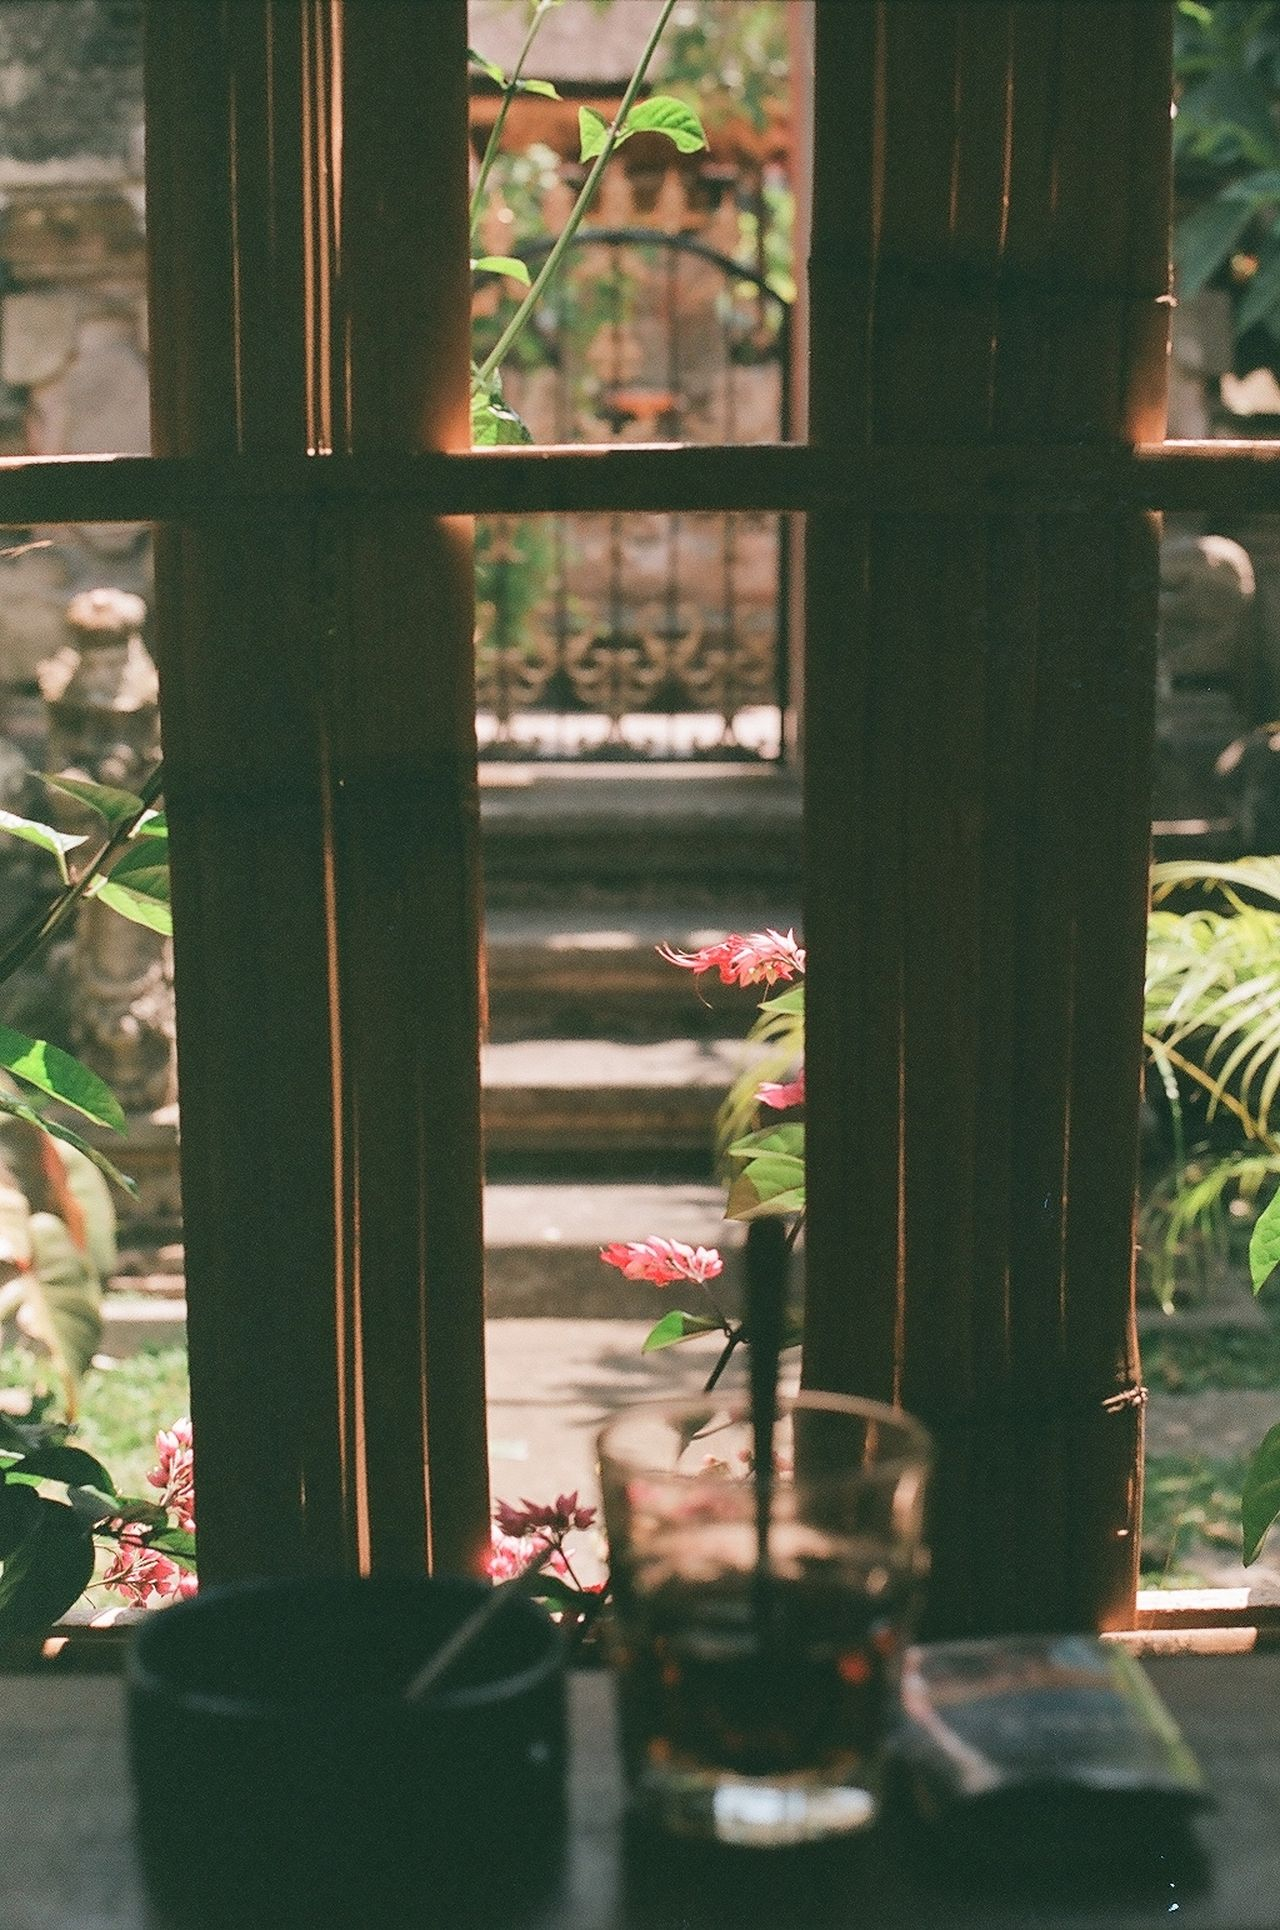 a secret spot in ubud for a tea or smoke Showcase: December Analog Film Analogue Photography 35mm Film Filmisnotdead Film Photography CanonFTQL Ubud Bali Streetphotography Freelance Life Canon Window Flowers Coffee Tea Cafe Window View Window Sill Moody Bali, Indonesia Interior Views My Favorite Place